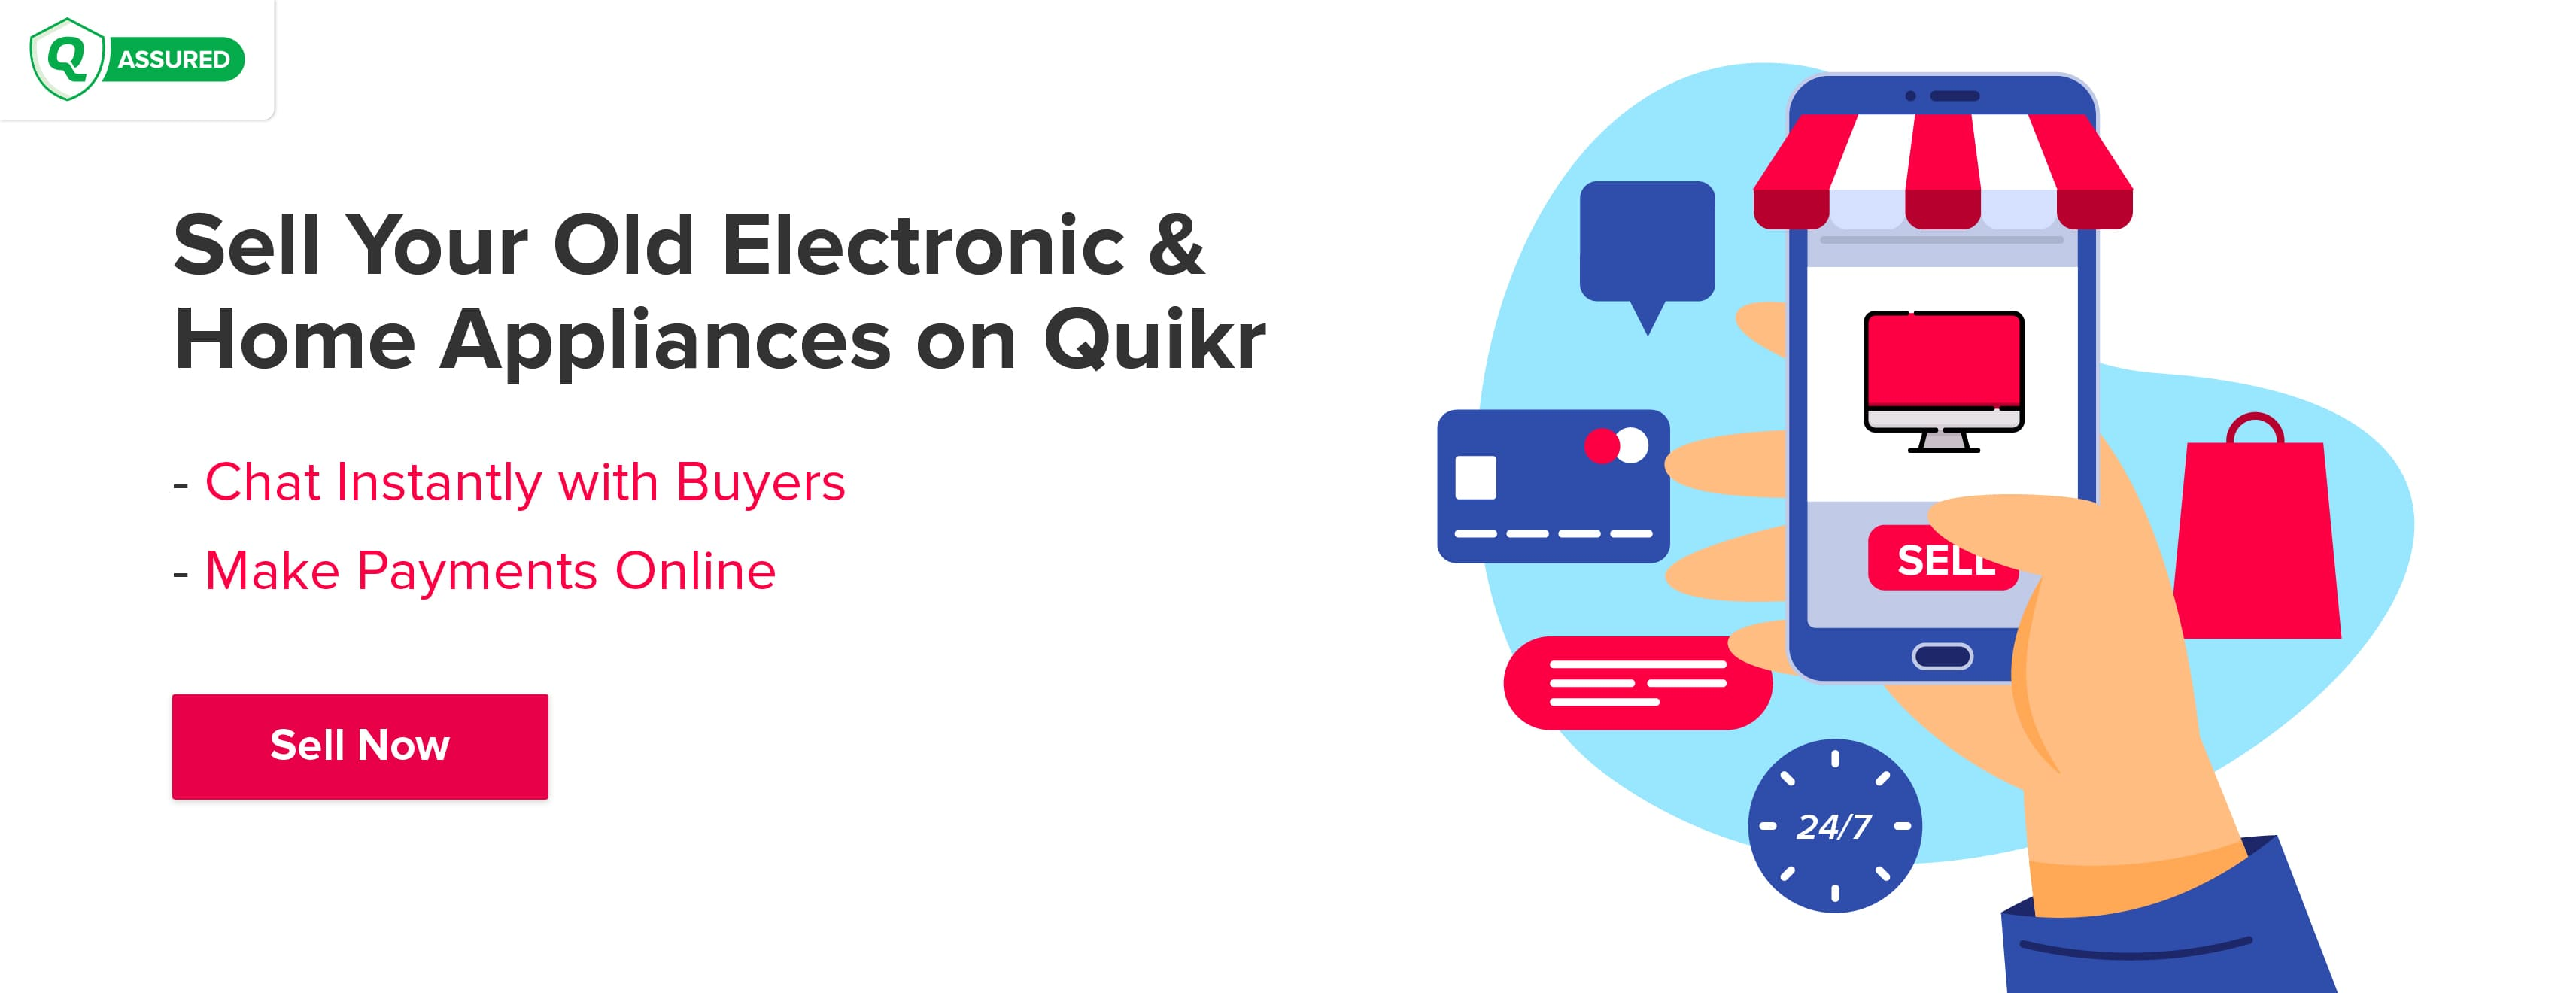 Quikrbazaar Online Shopping For Mobiles Electronics Fashion Lifestyle Home Appliances Furniture And More Quikr Bazaar India